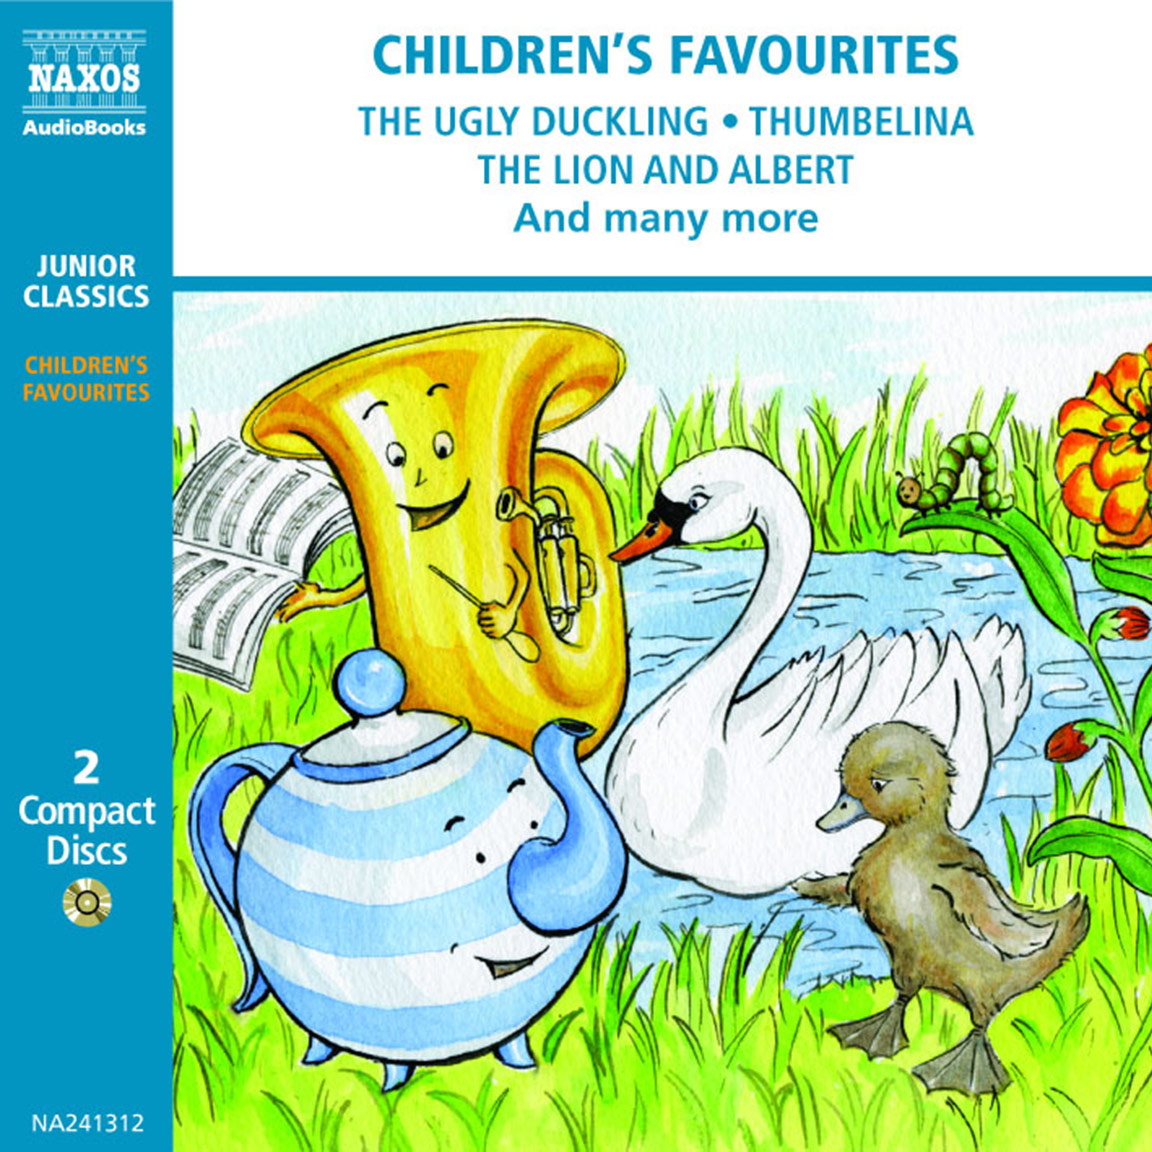 Children's Favourites (selections)